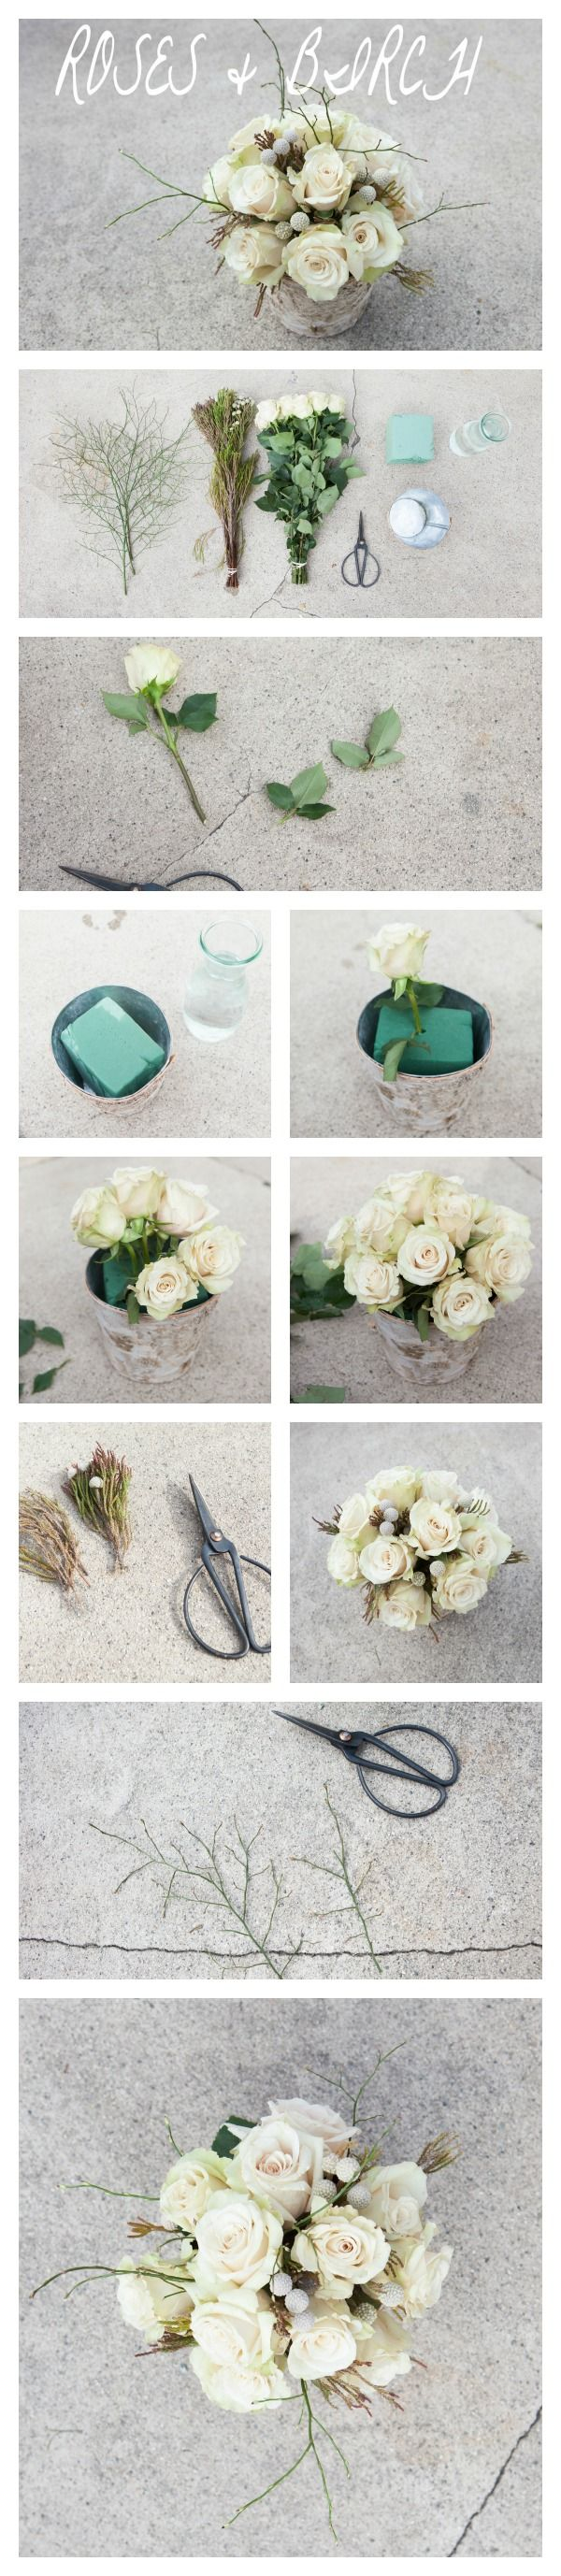 Rose & Birch Centerpiece Step By Step DIY Tutorial